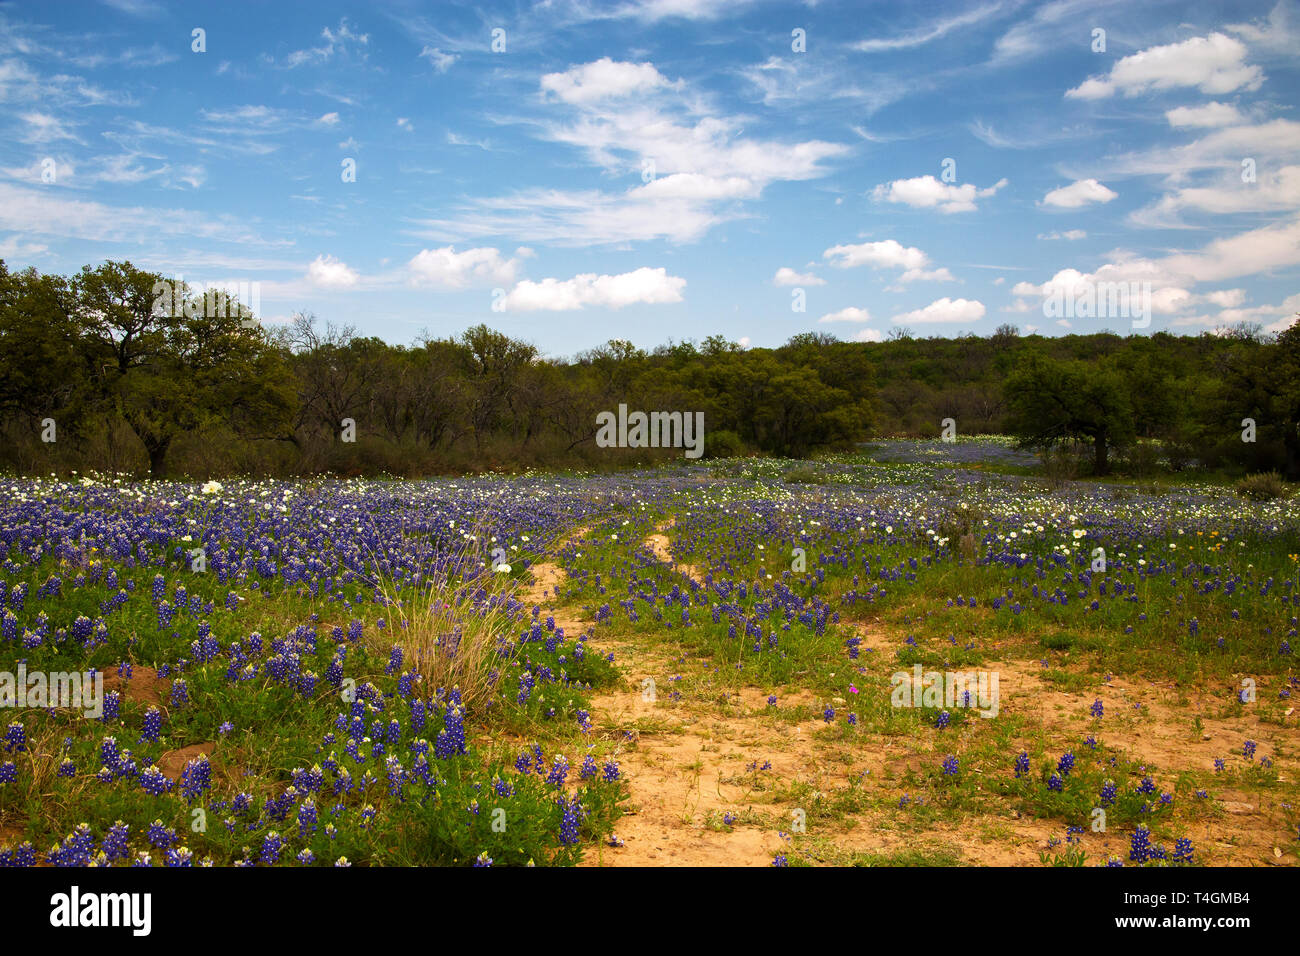 Old Road Through a field of Wild Flowers in Hill Country, Texas Stock Photo